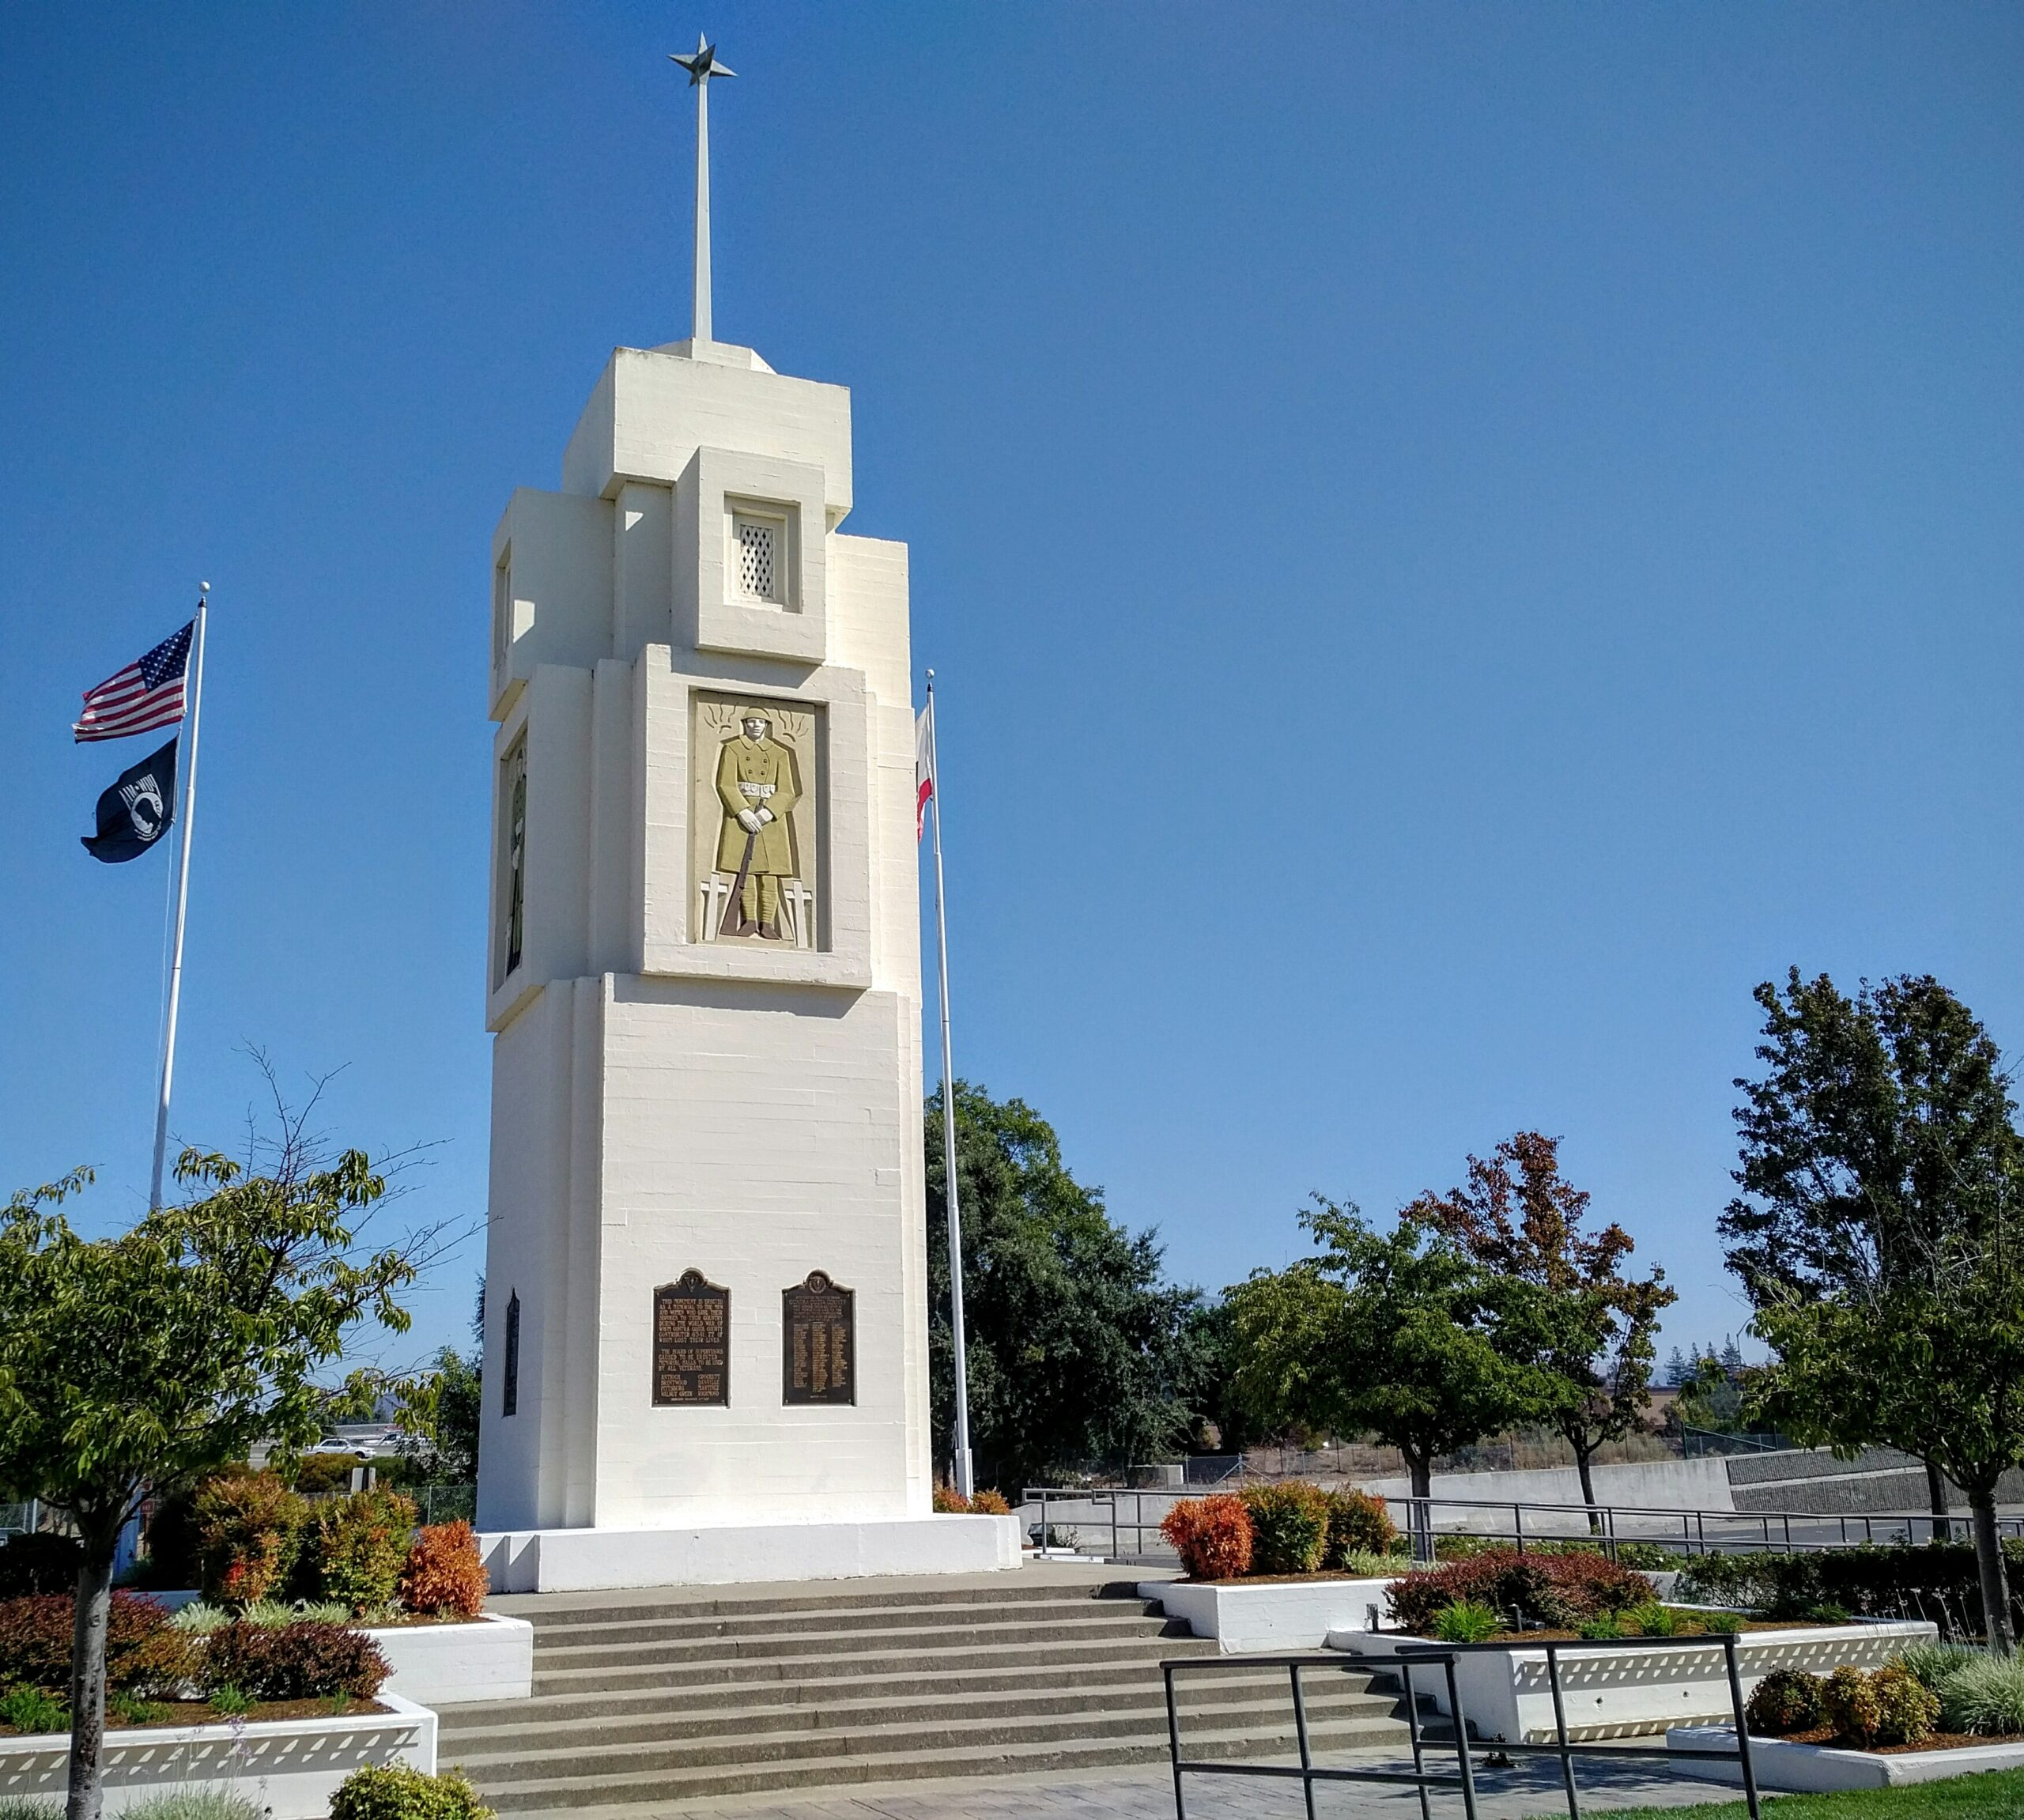 Soldiers_Memorial_Pleasant_Hill_California_at_Boyd_Road_v3